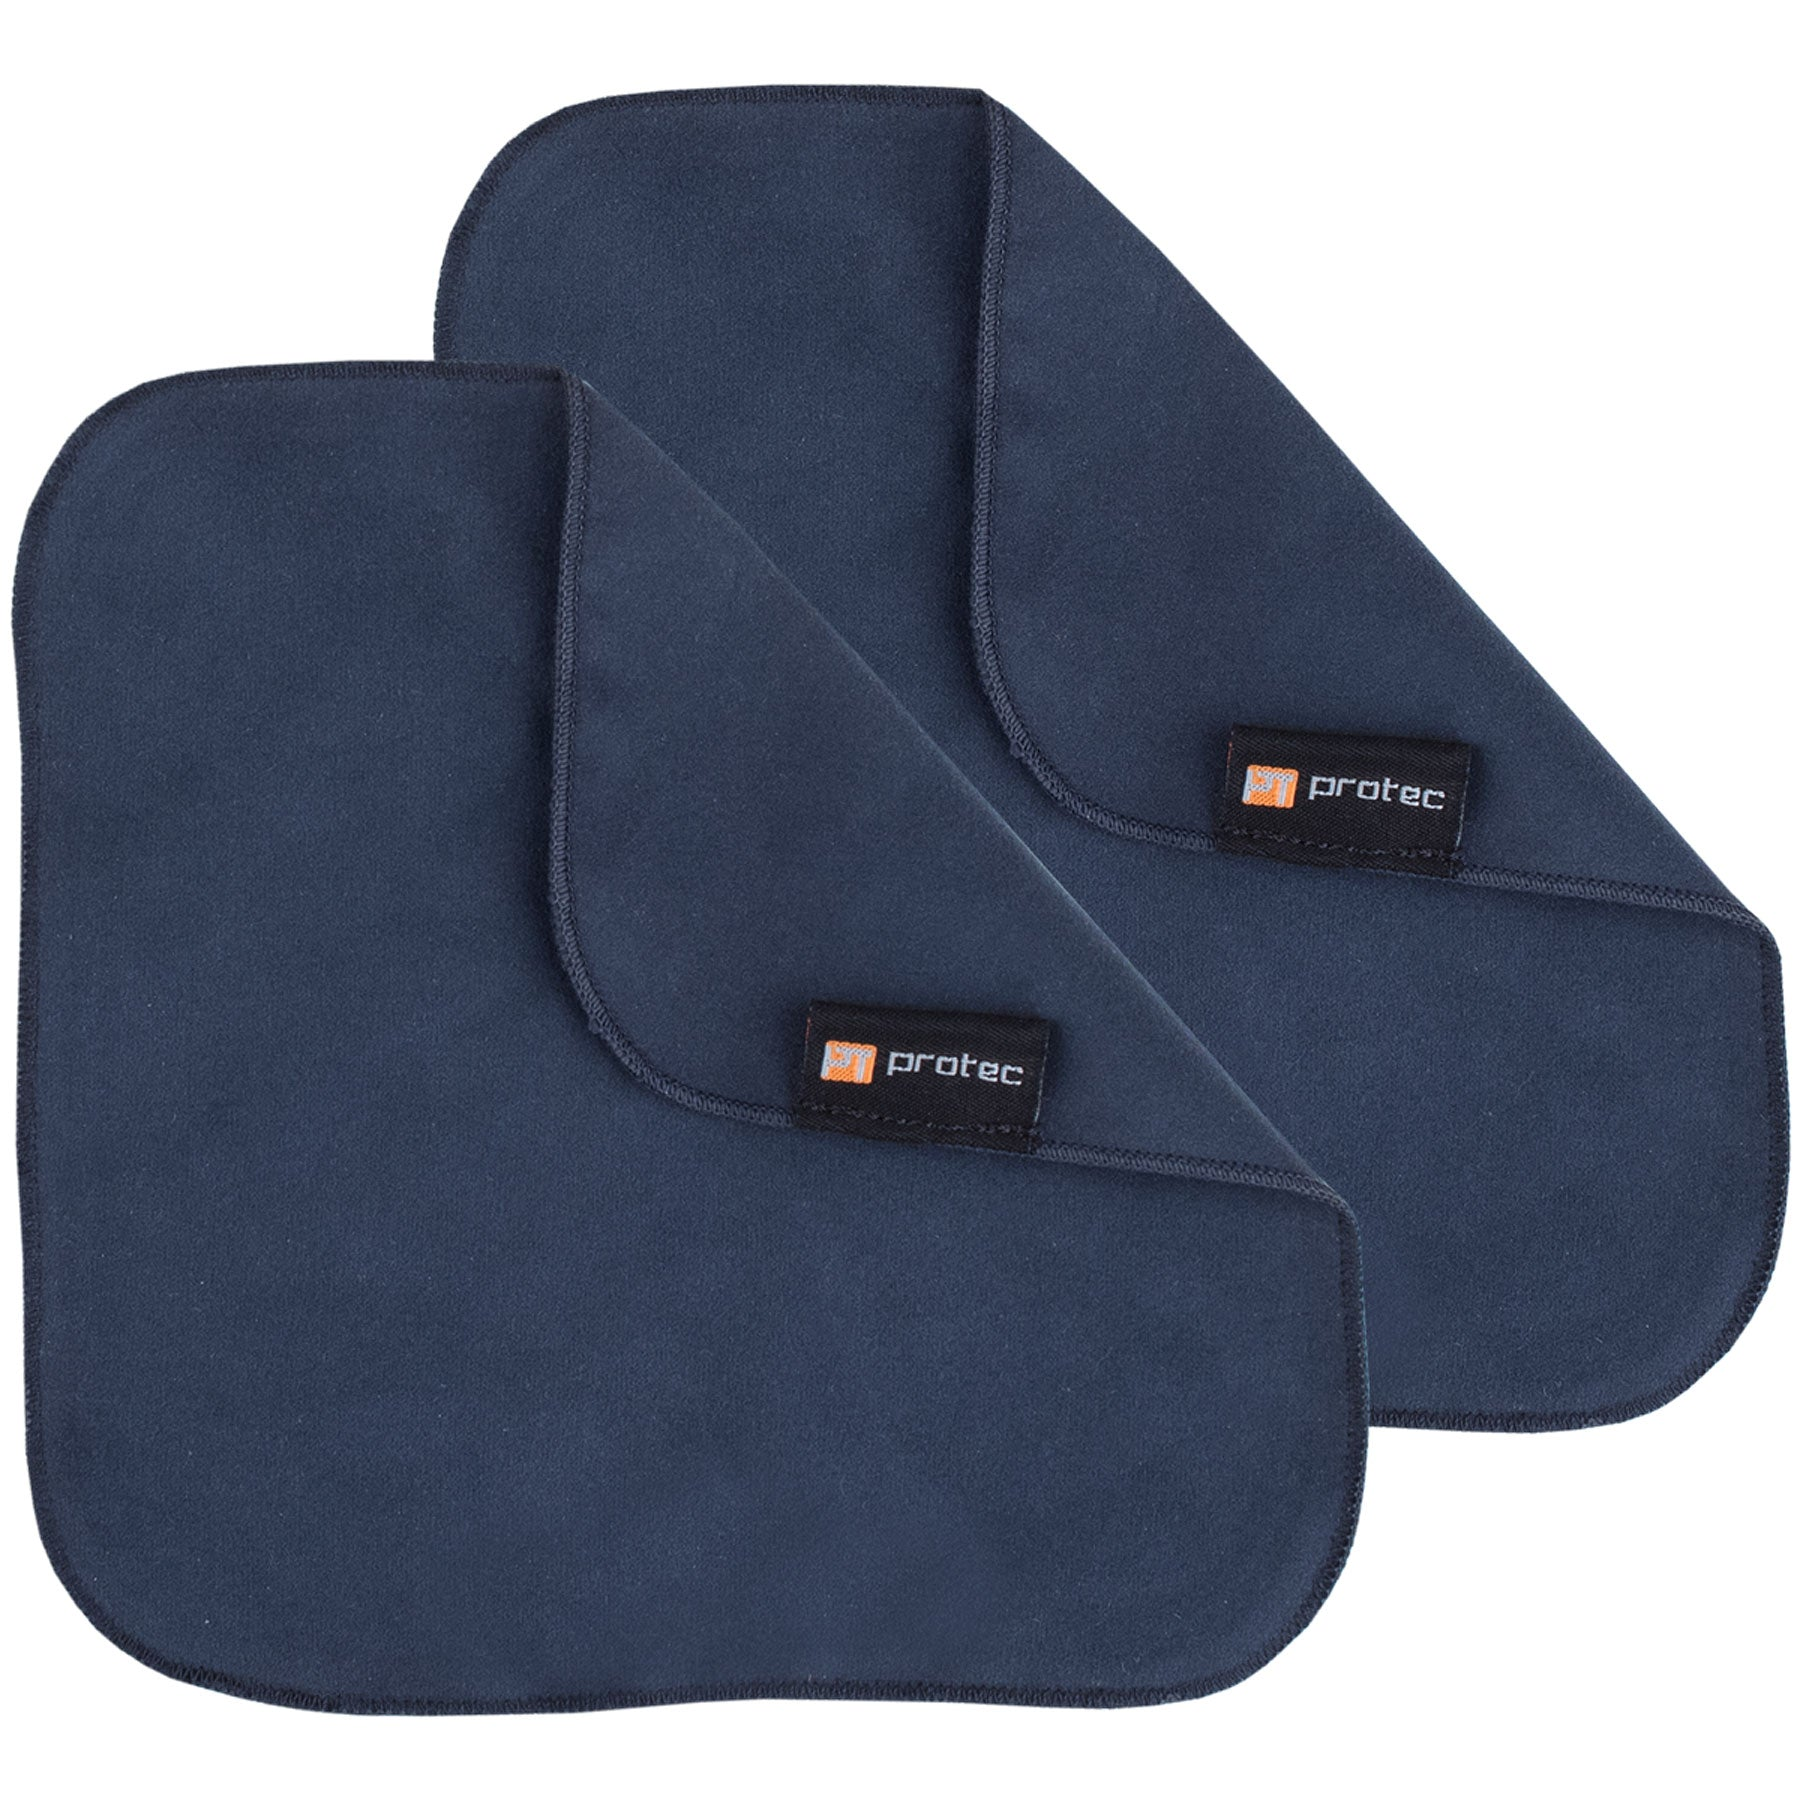 "PROTEC 7 x 7"" Microfiber Cleaning Cloth"